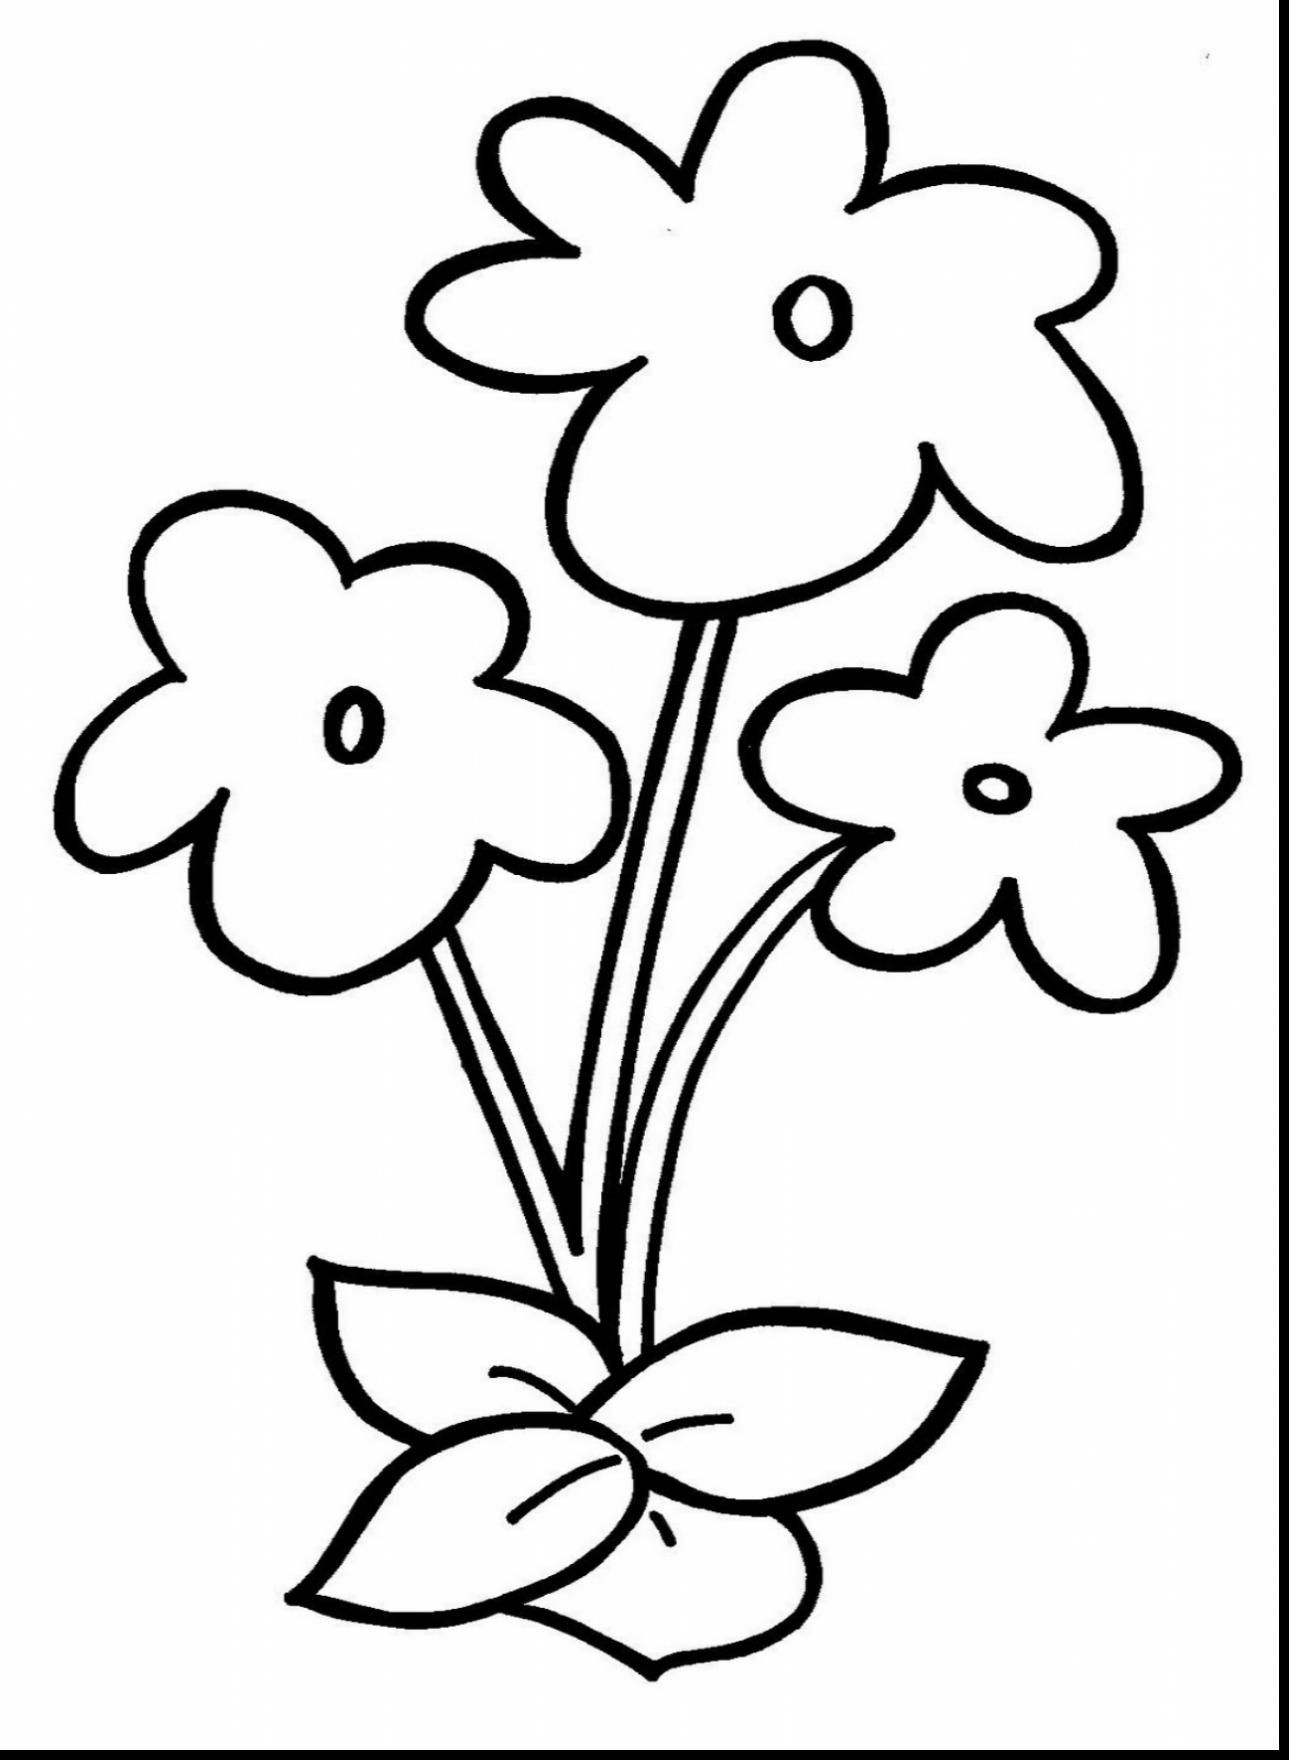 picture of flowers to print free easy to print flower coloring pages tulamama print picture of to flowers